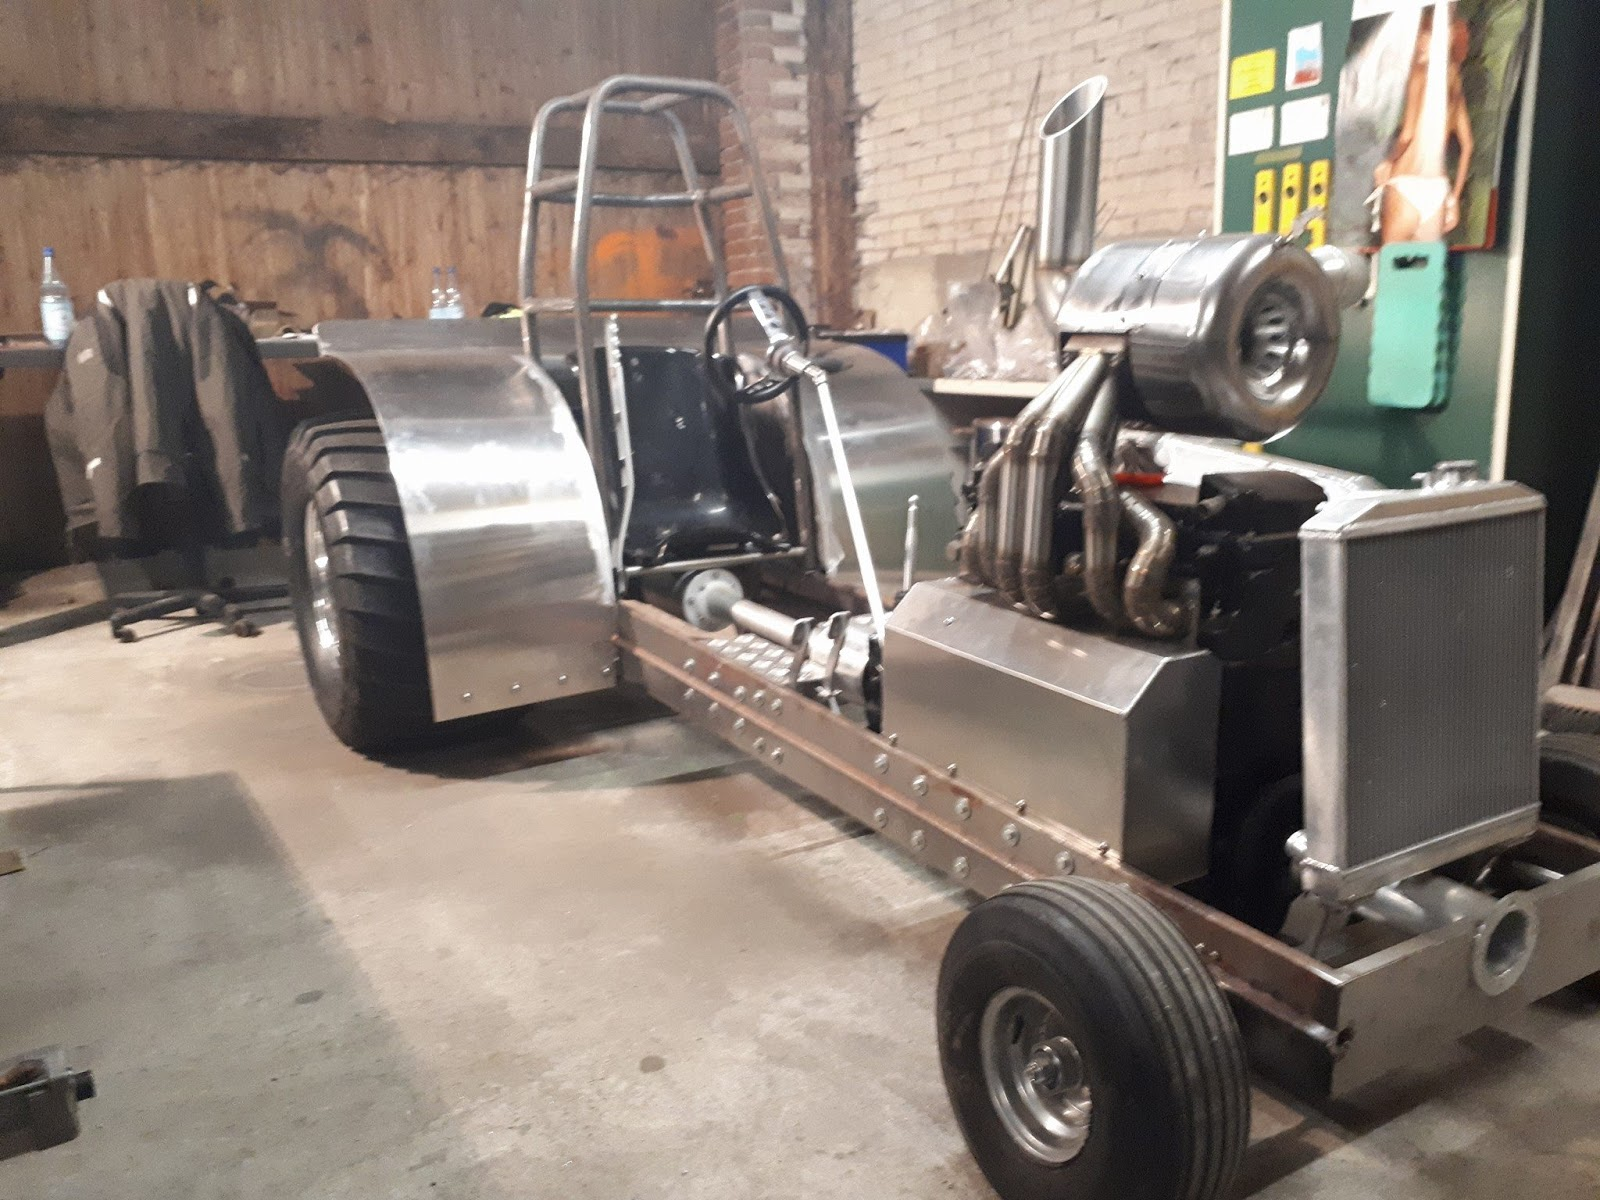 From Ostbevern in Germany, the Green Scare Pulling Team are currently building on a new 600kg Modified Garden Puller Tractor for the 2018 season.